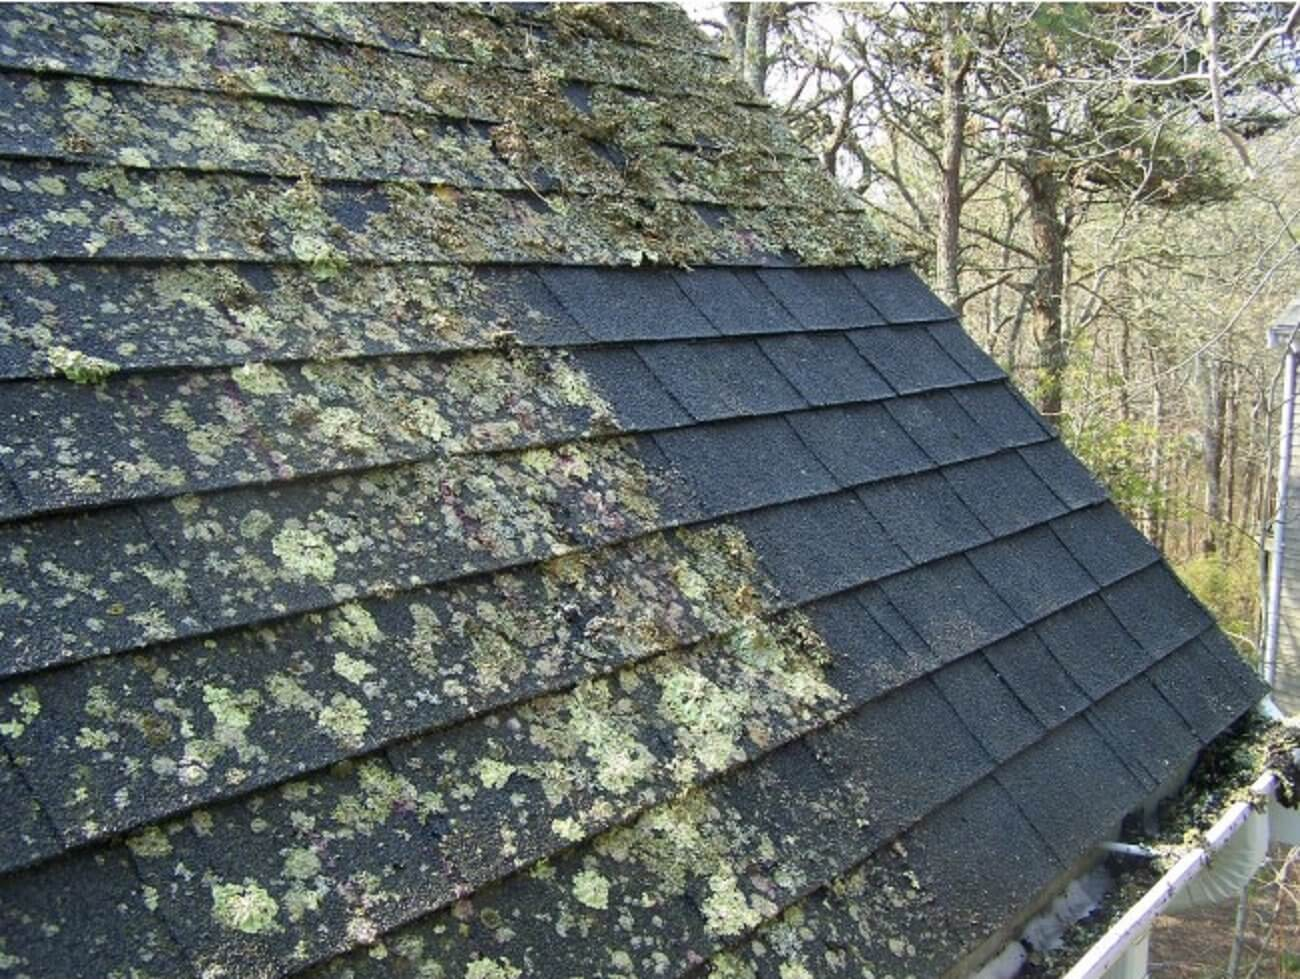 What Is The Best Way To Remove Roof Fungus Answered By A